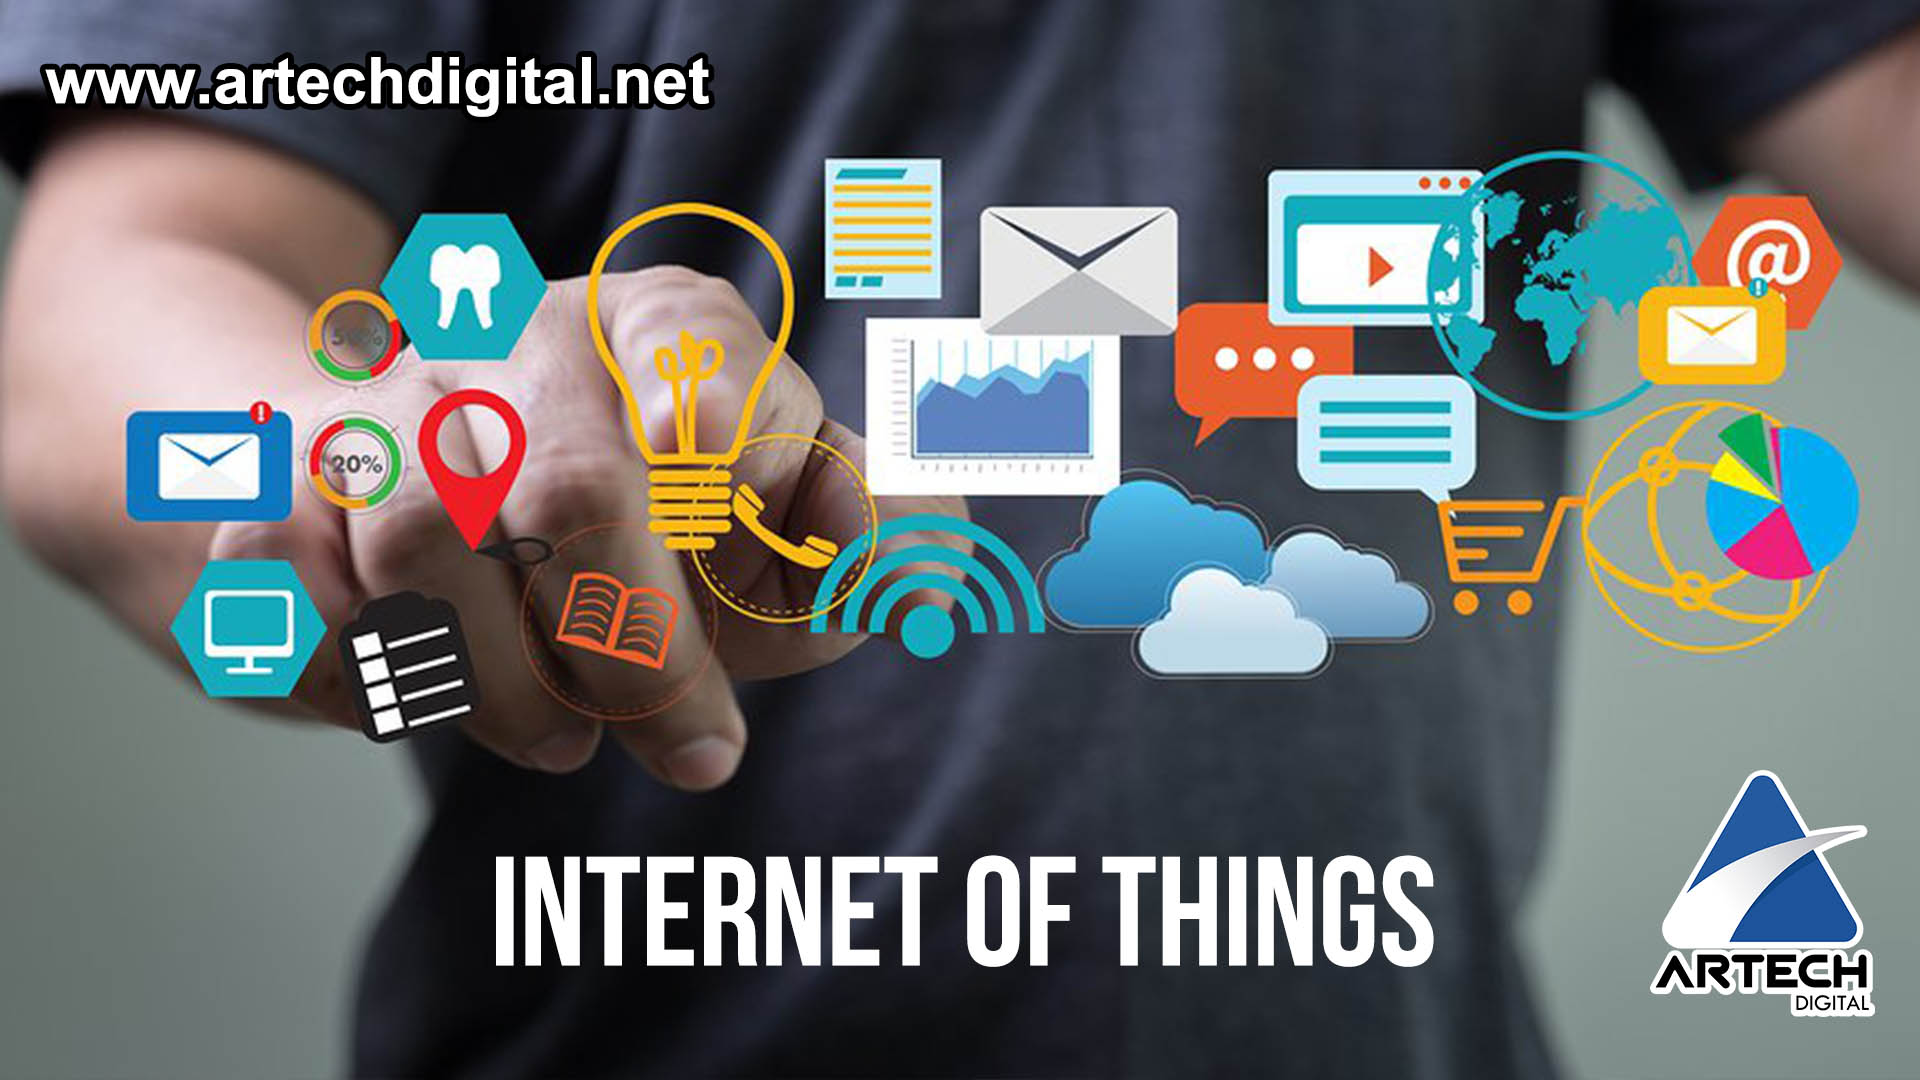 Internet of Things en el Marketing Digital, ya es parte de nuestro día a día